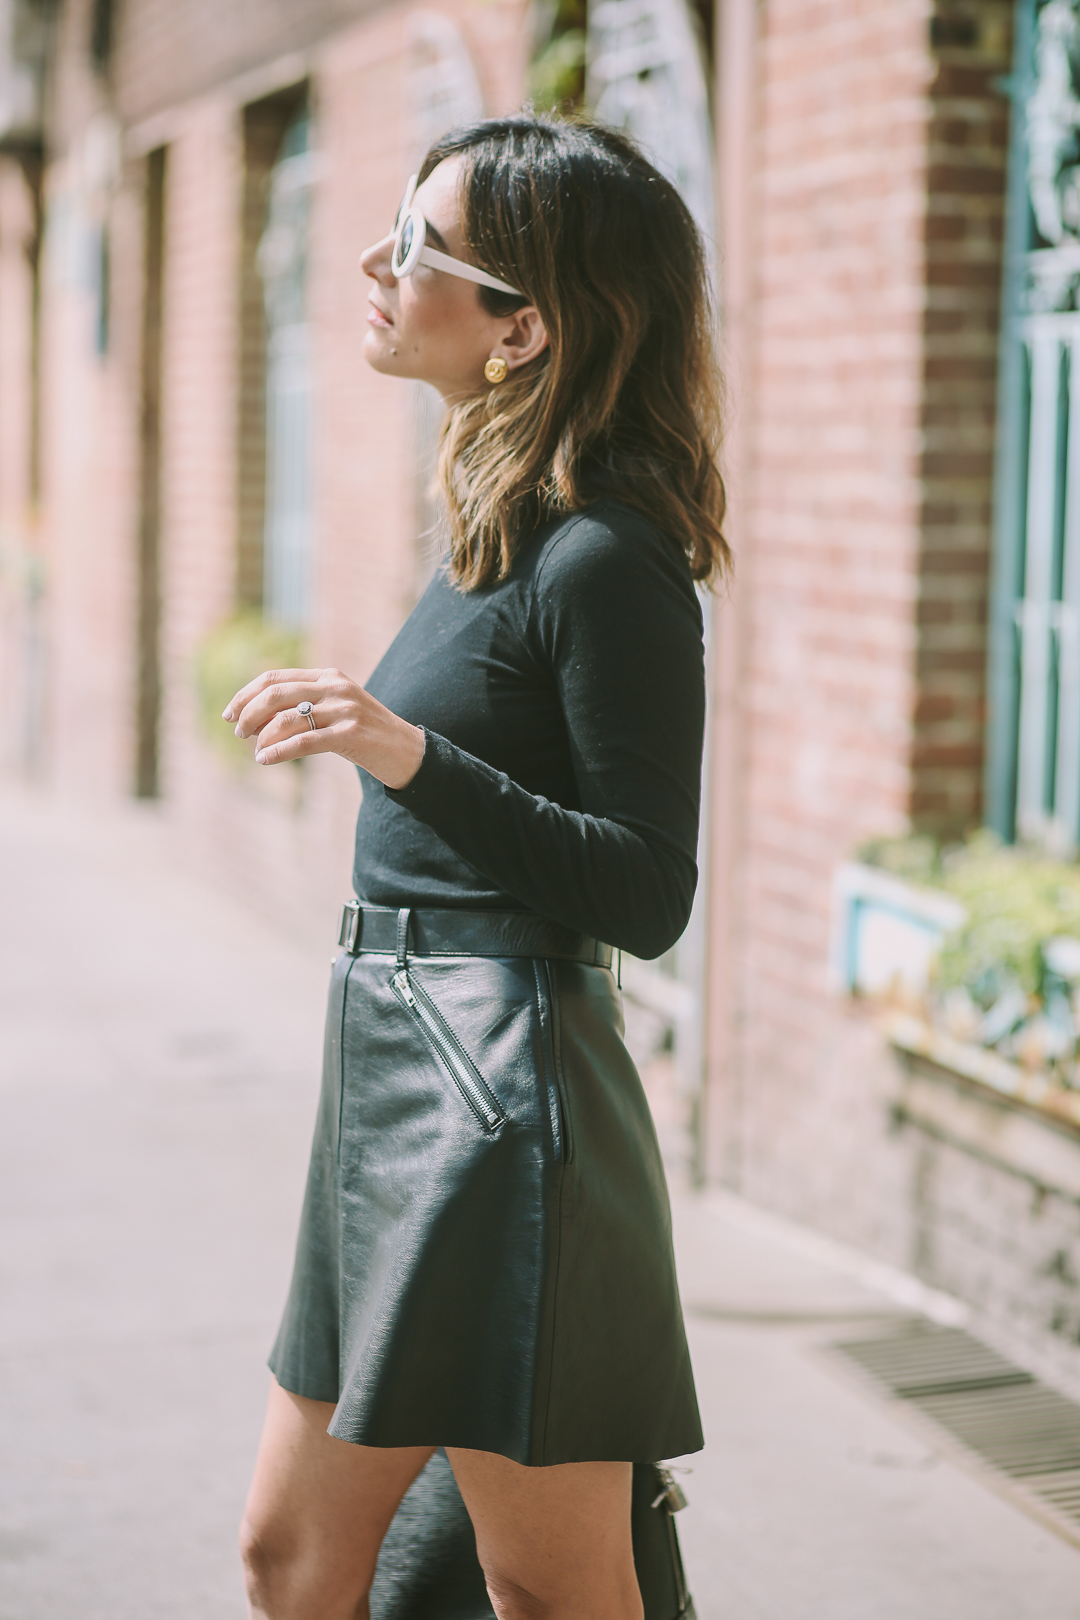 how to style a turtleneck outfit ideas